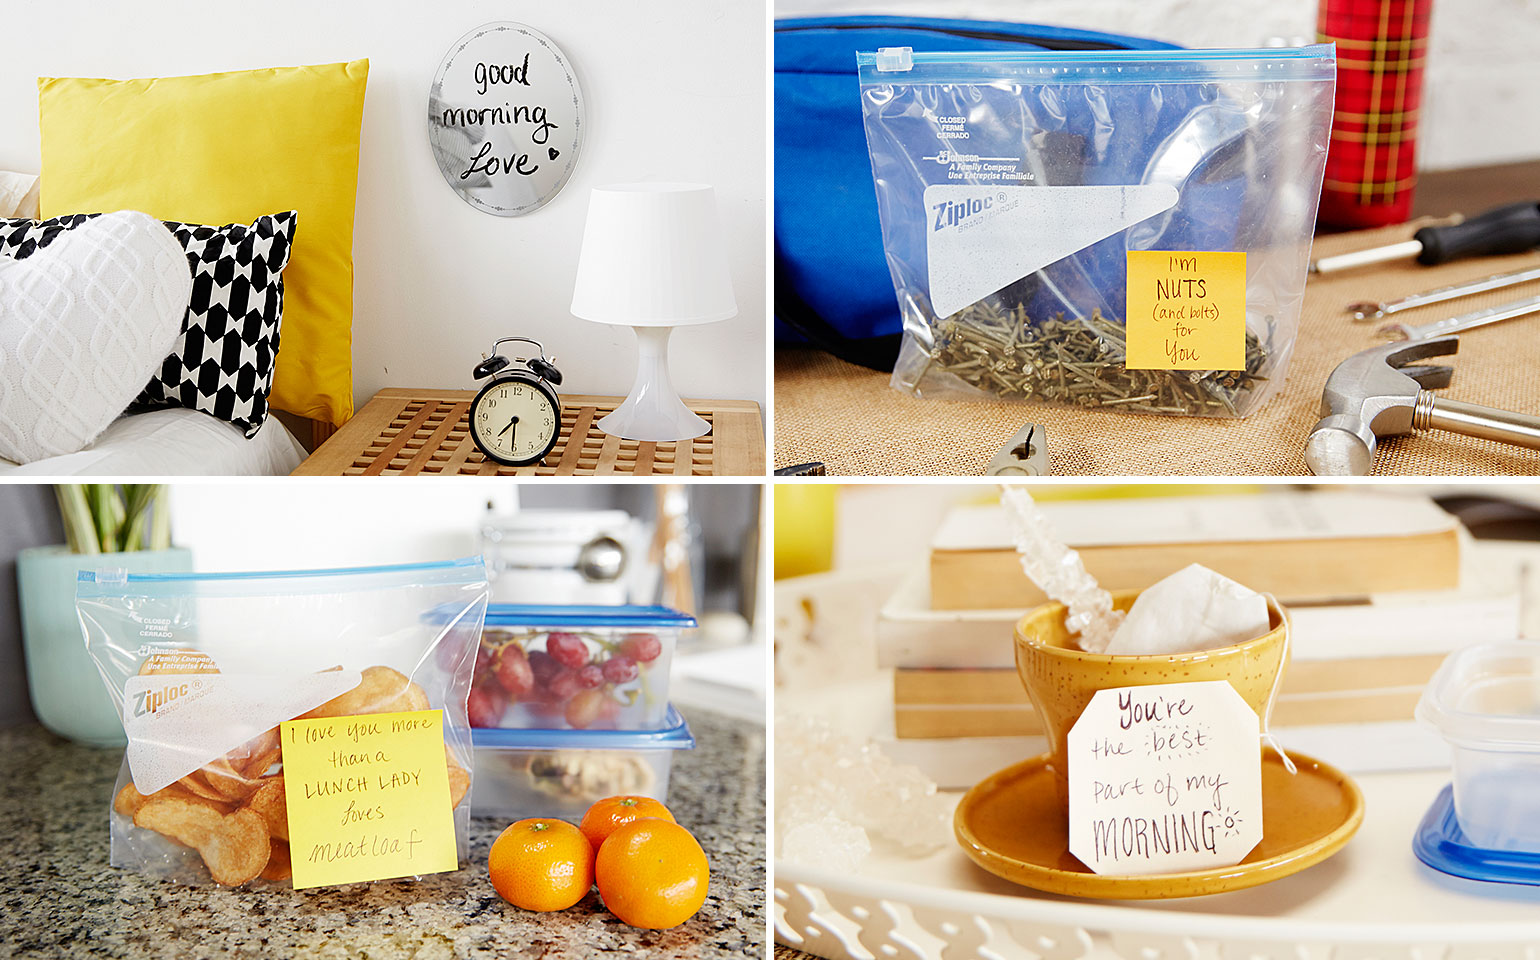 Small-But-Mighty-Ways-To-Say-I-Love-You-Ziploc-brand